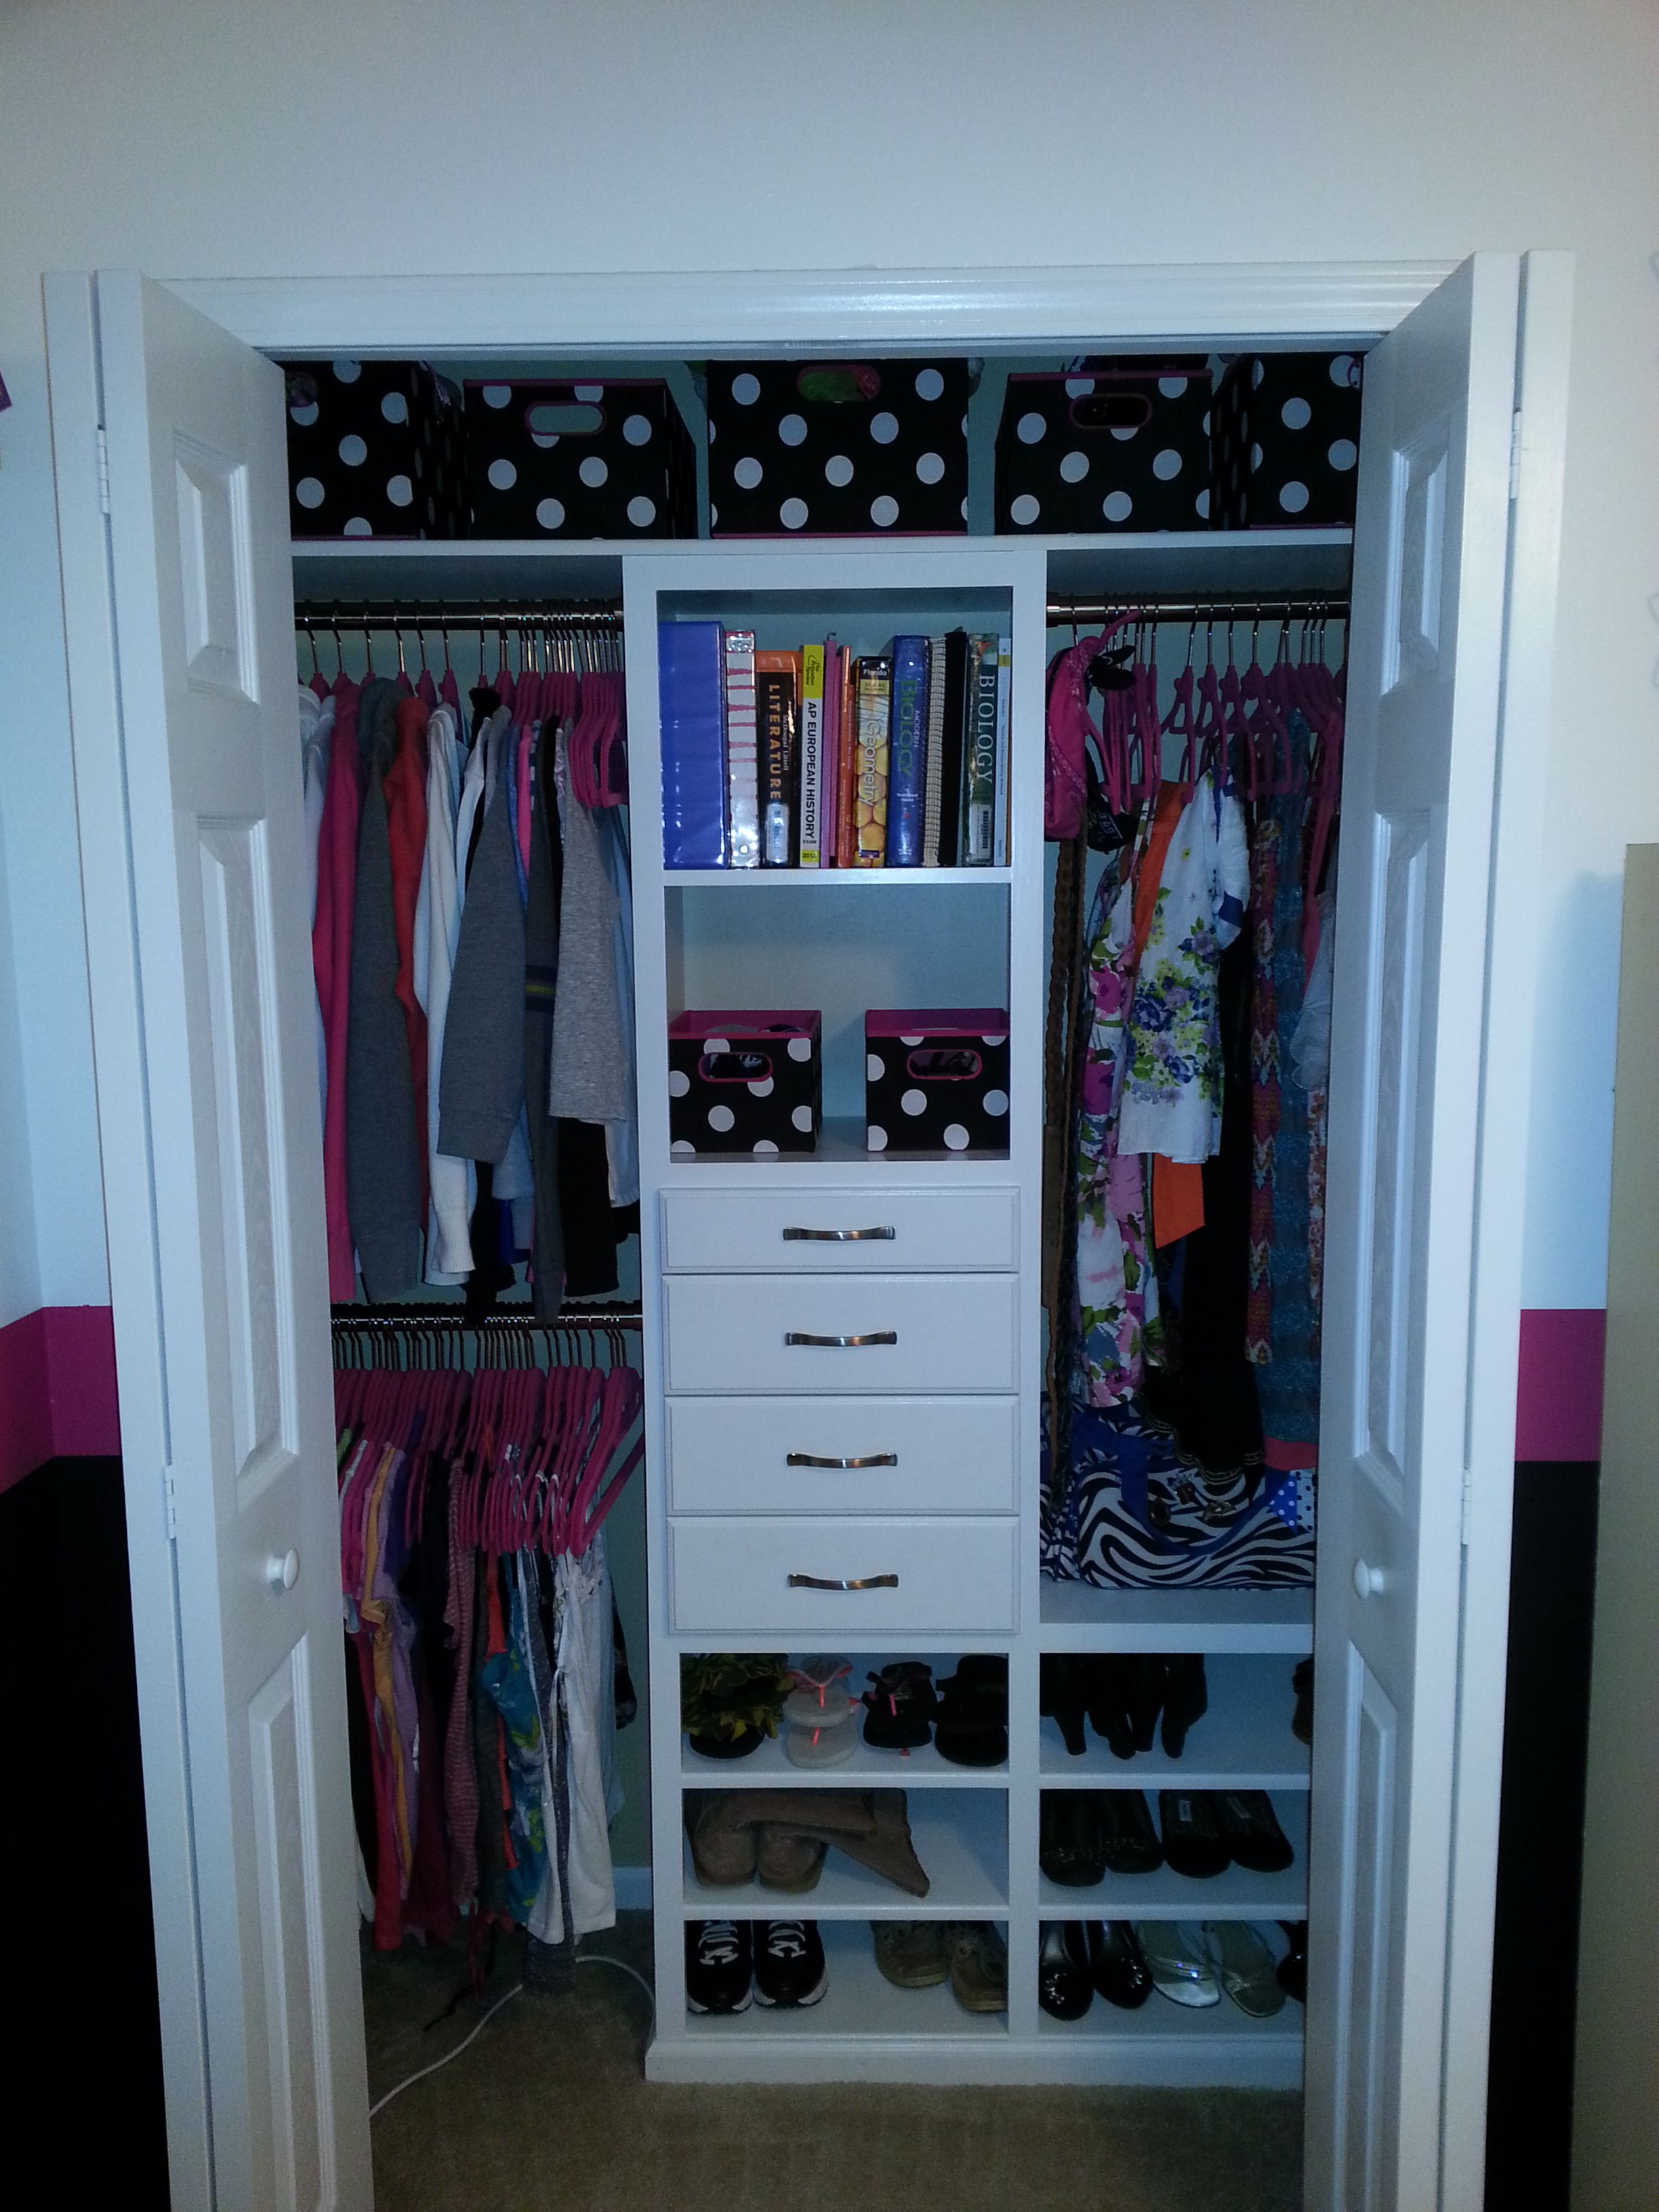 Teen closet get organized in style free step by step diy for Storage ideas for small bedrooms with no closet